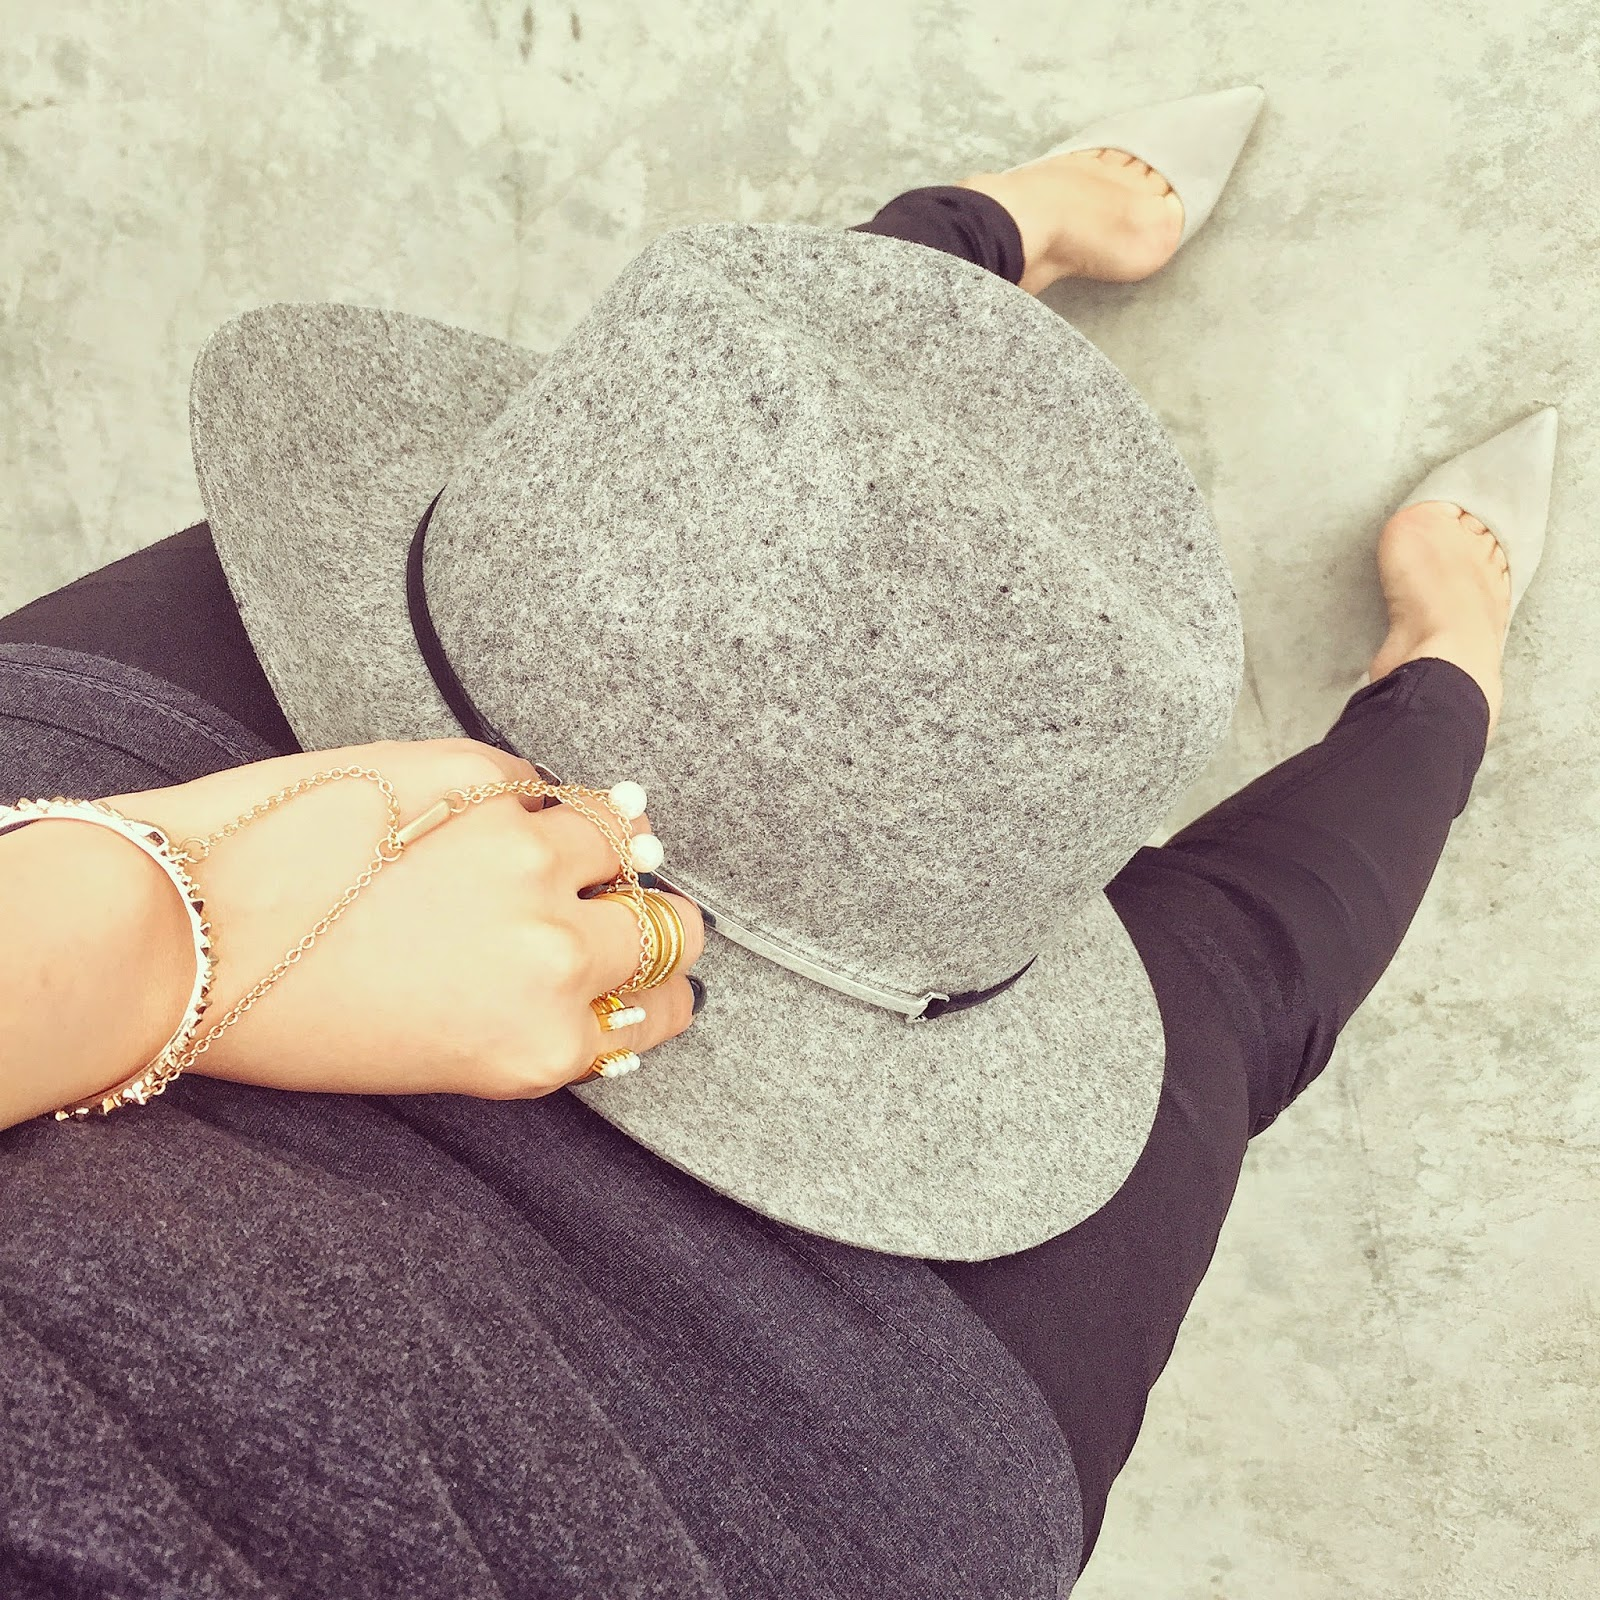 Janessa Leone Victoria hat, kendra scott yasmin bracelet, baublebar pearl ring, joes jeans, schutz heels, from where i stand, fashion blog